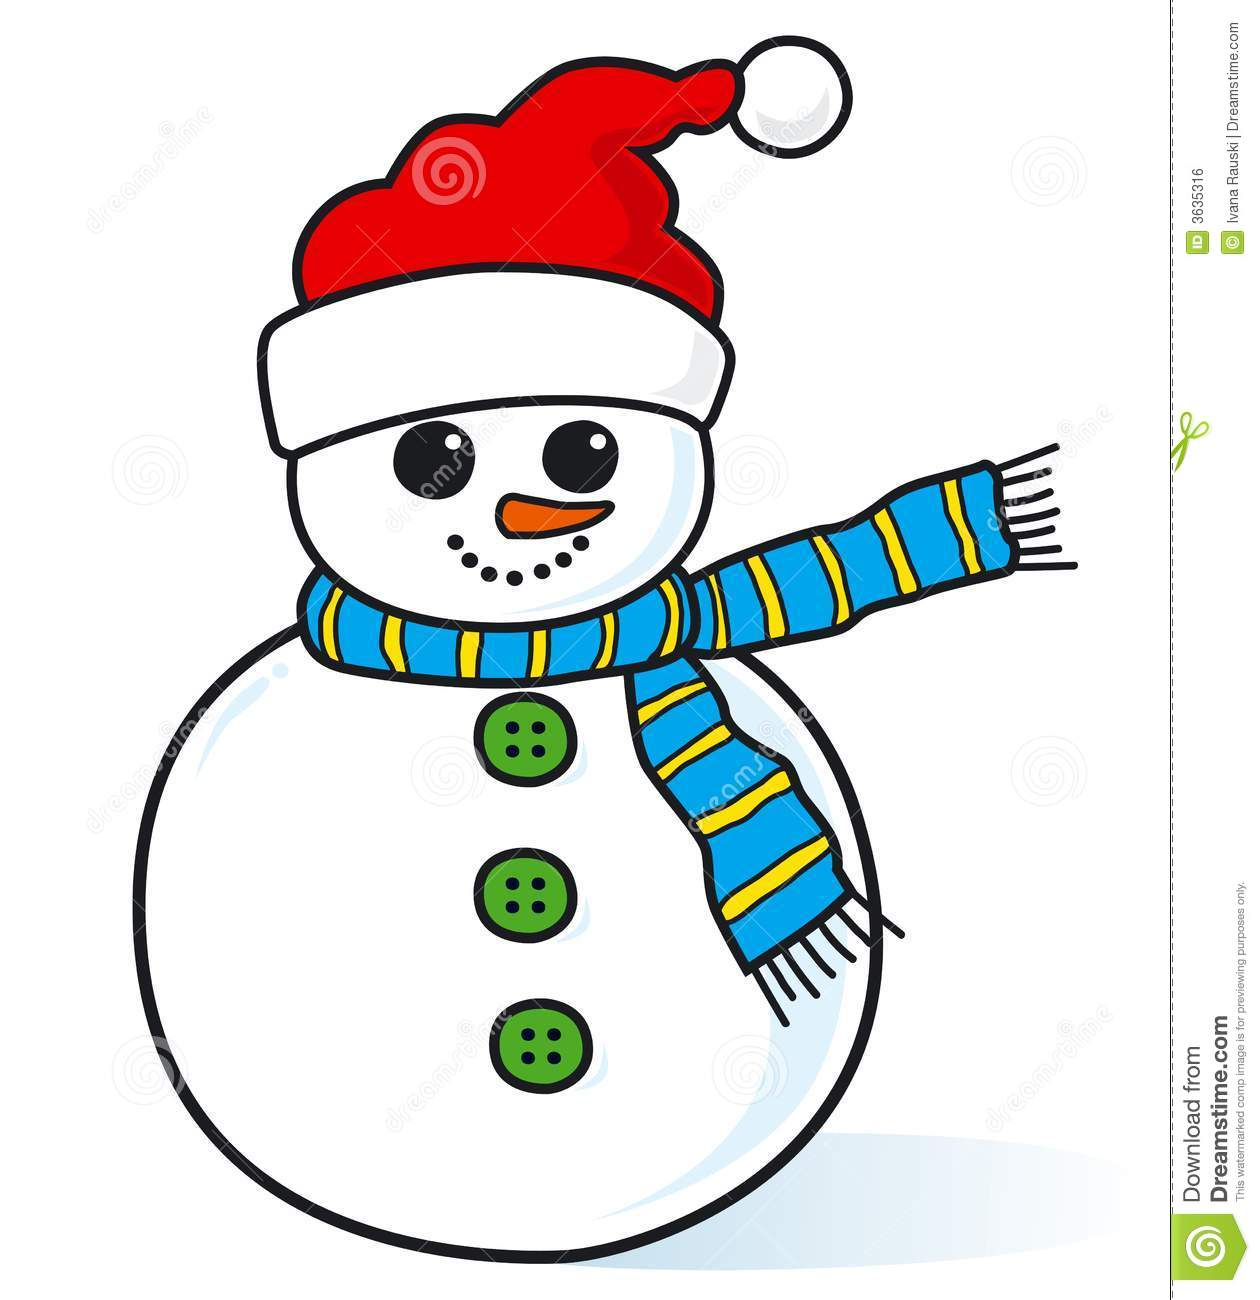 Cute Little Snowman Royalty Free Stock Image   Image  3635316